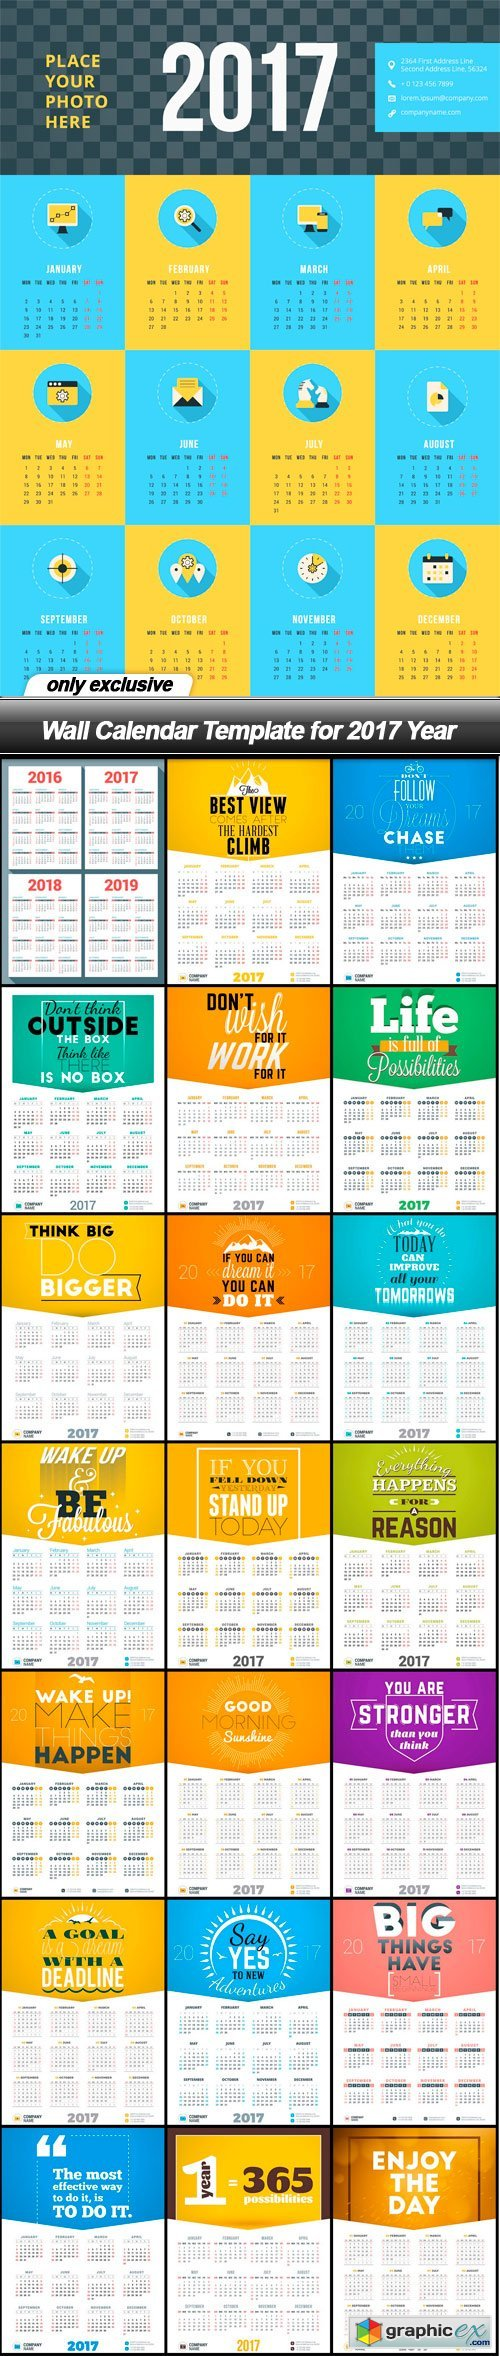 wall calendar template for 2017 year 22 eps free download vector